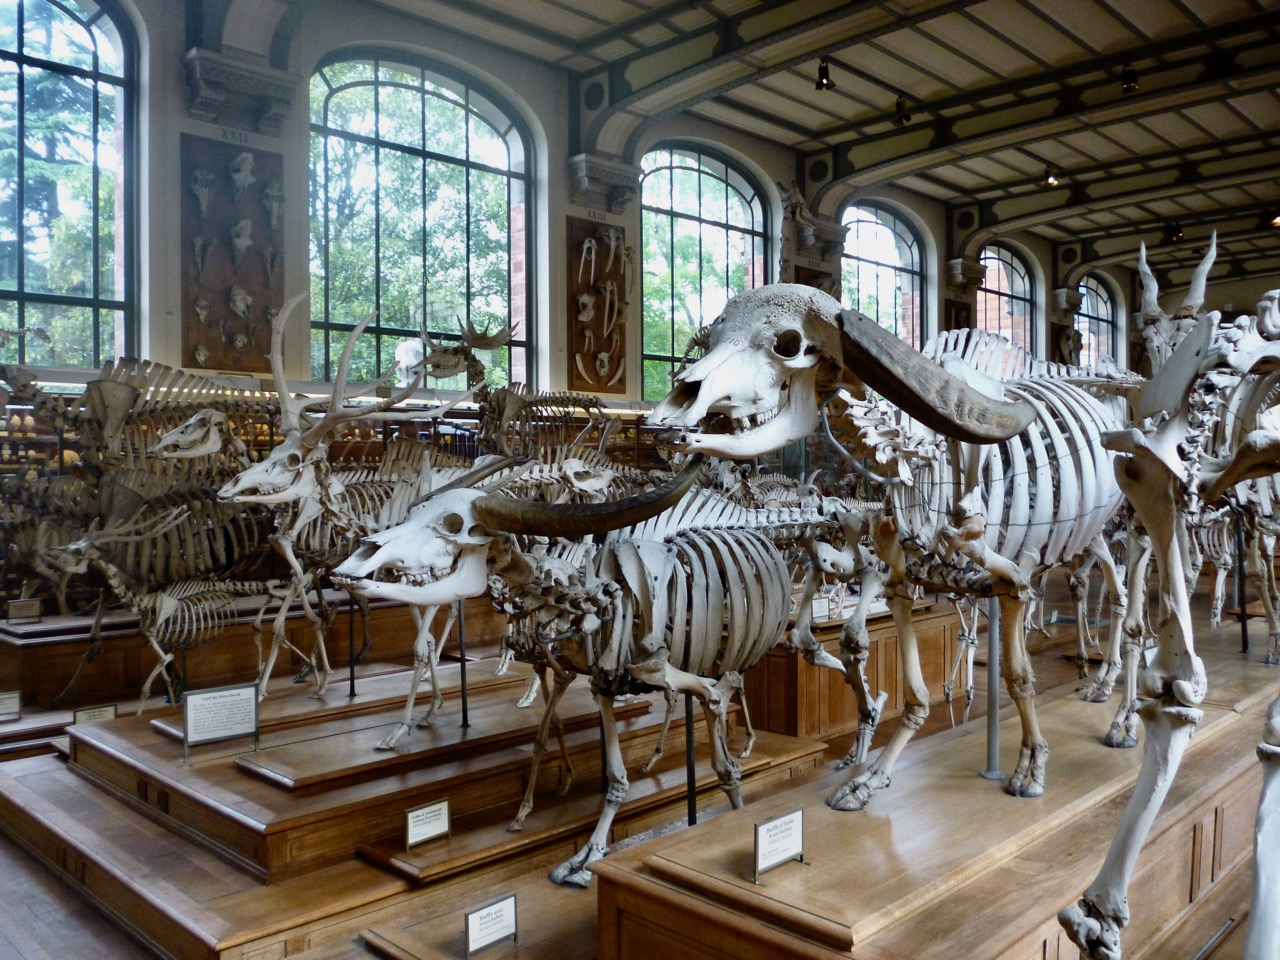 buffalo skeletons Gallery of Comparative Anatomy Paris